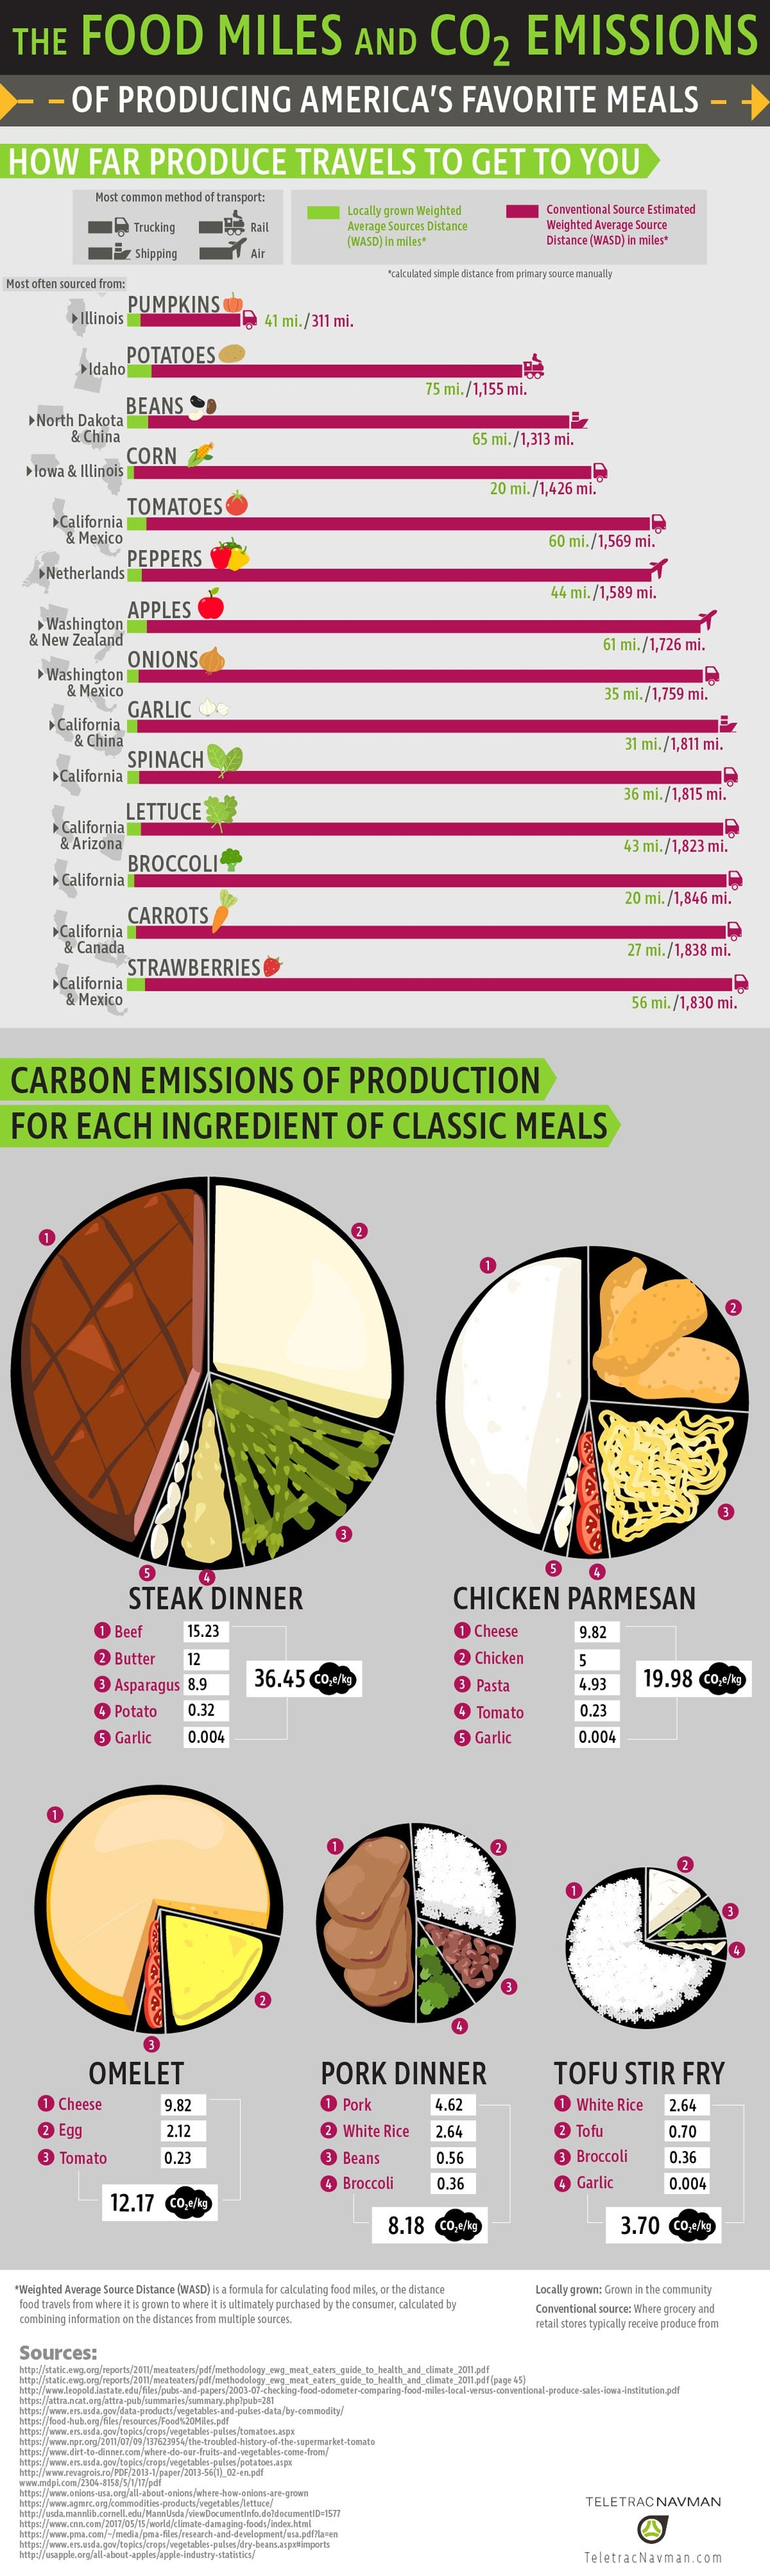 The Food Miles and CO2 Emissions of Producing America